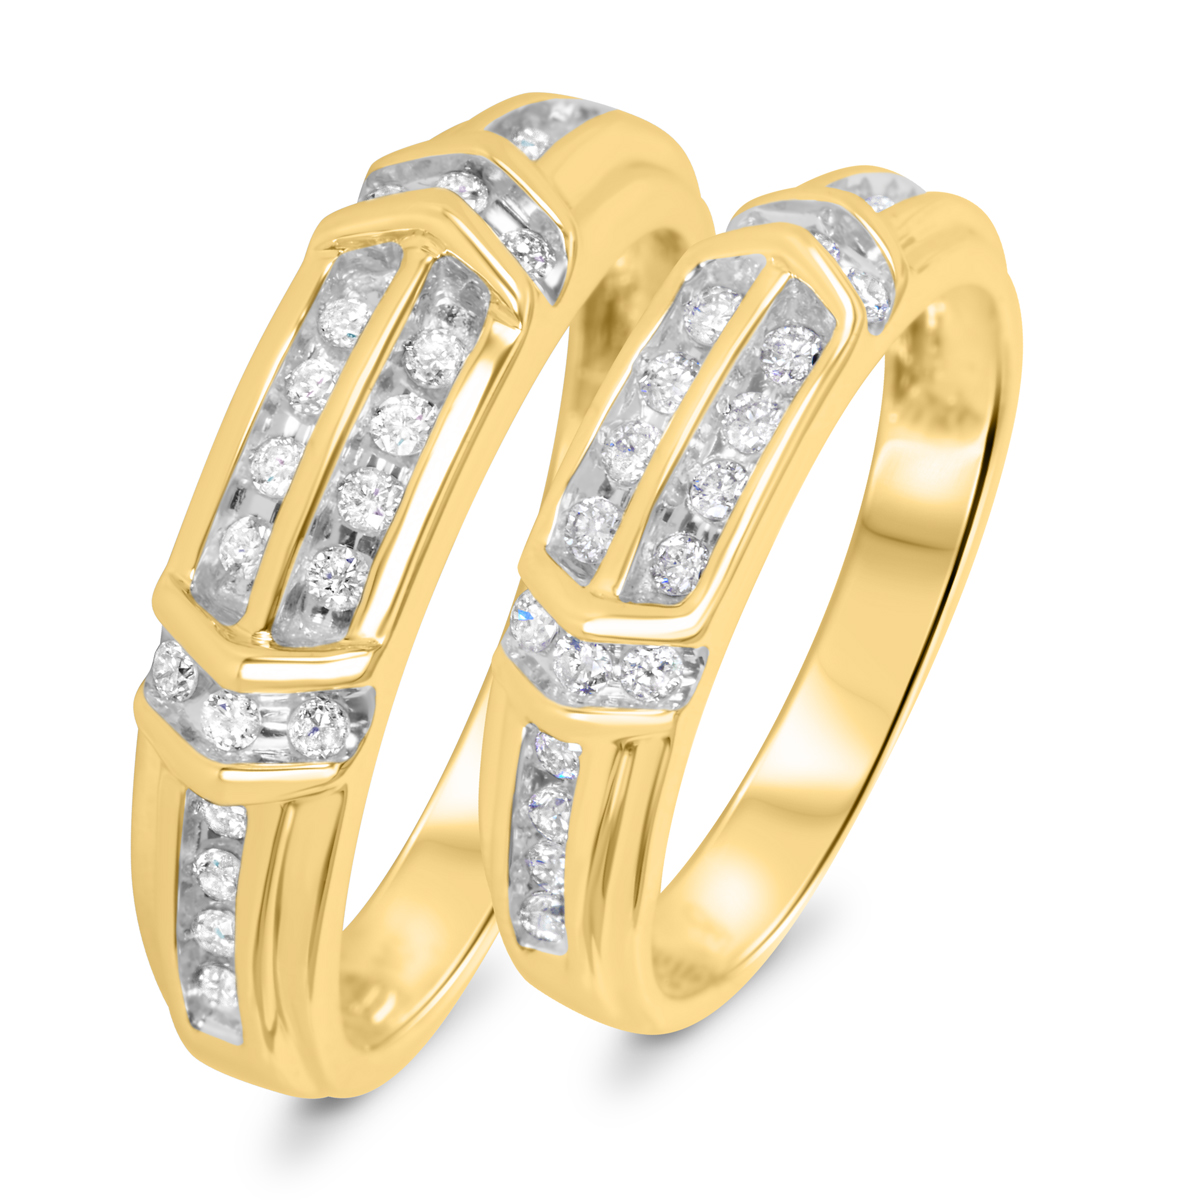 1/2 CT. T.W. Diamond His And Hers Wedding Band Set 14K Yellow Gold